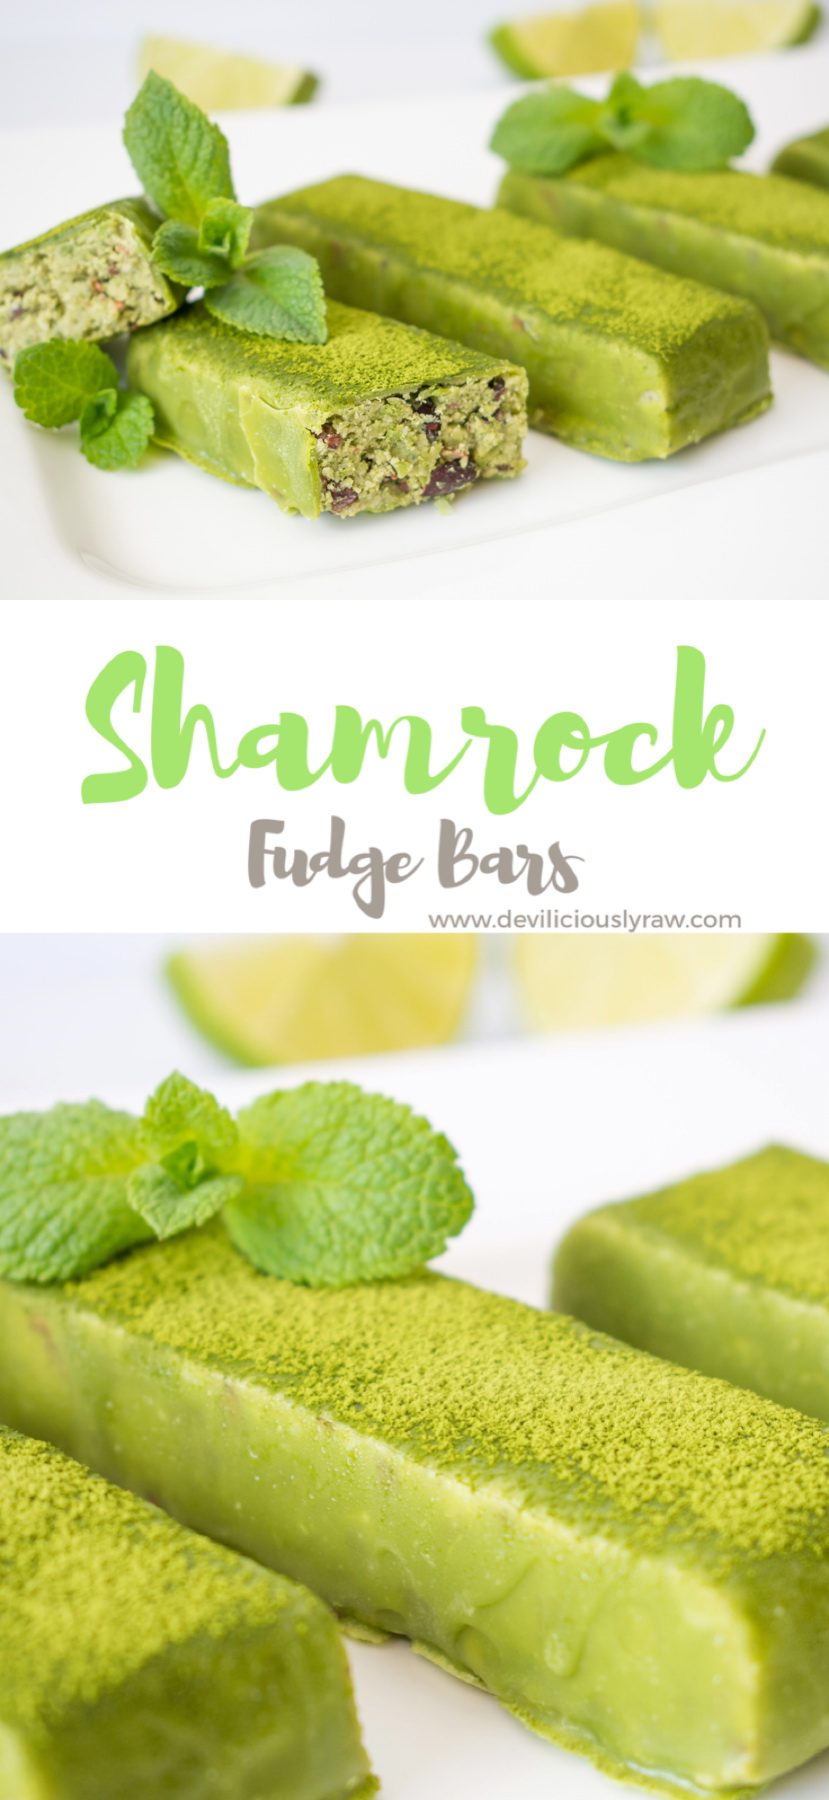 Shamrock Fudge Bars